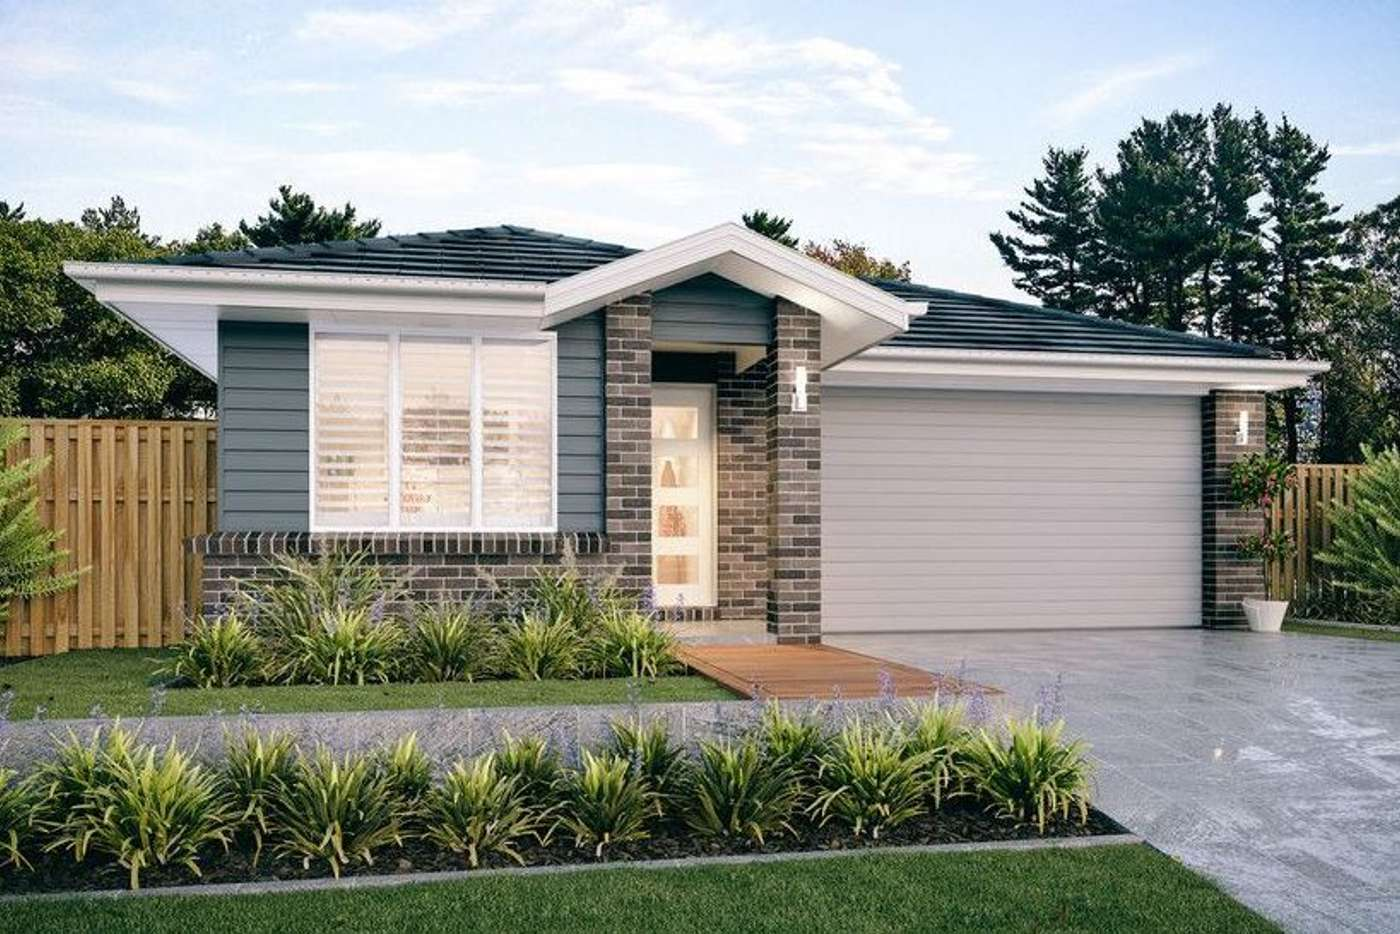 Main view of Homely house listing, 125 Weedbrook St, Park Ridge South QLD 4125